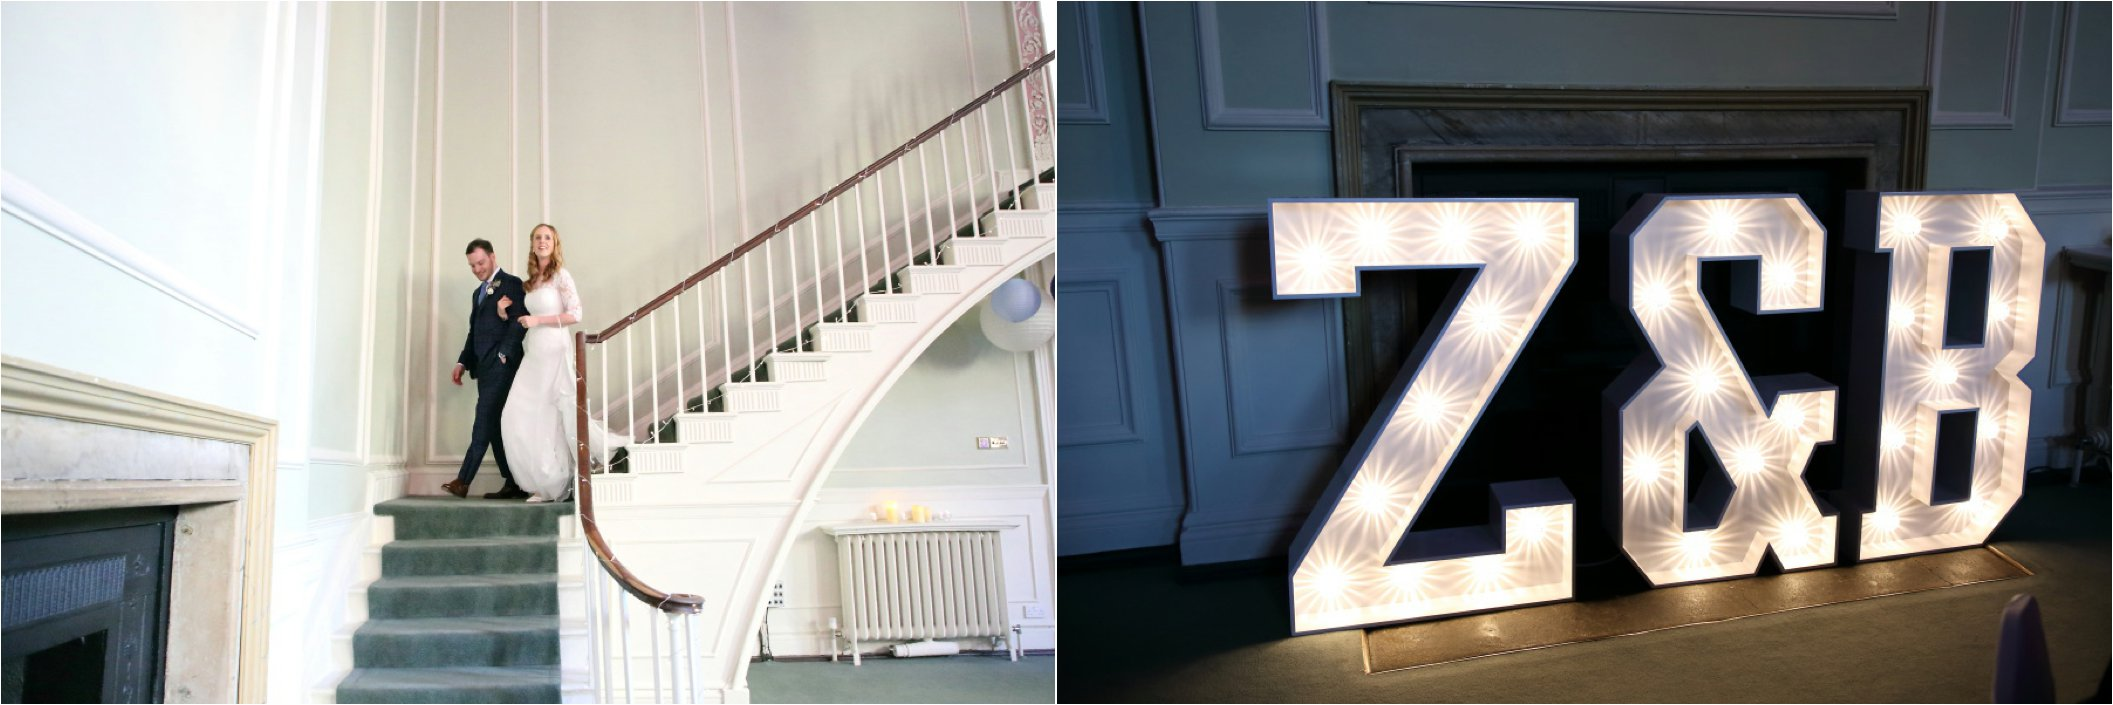 light up giant letters and walking down the staircase at wedding The Athenaeum Bury St Edmunds